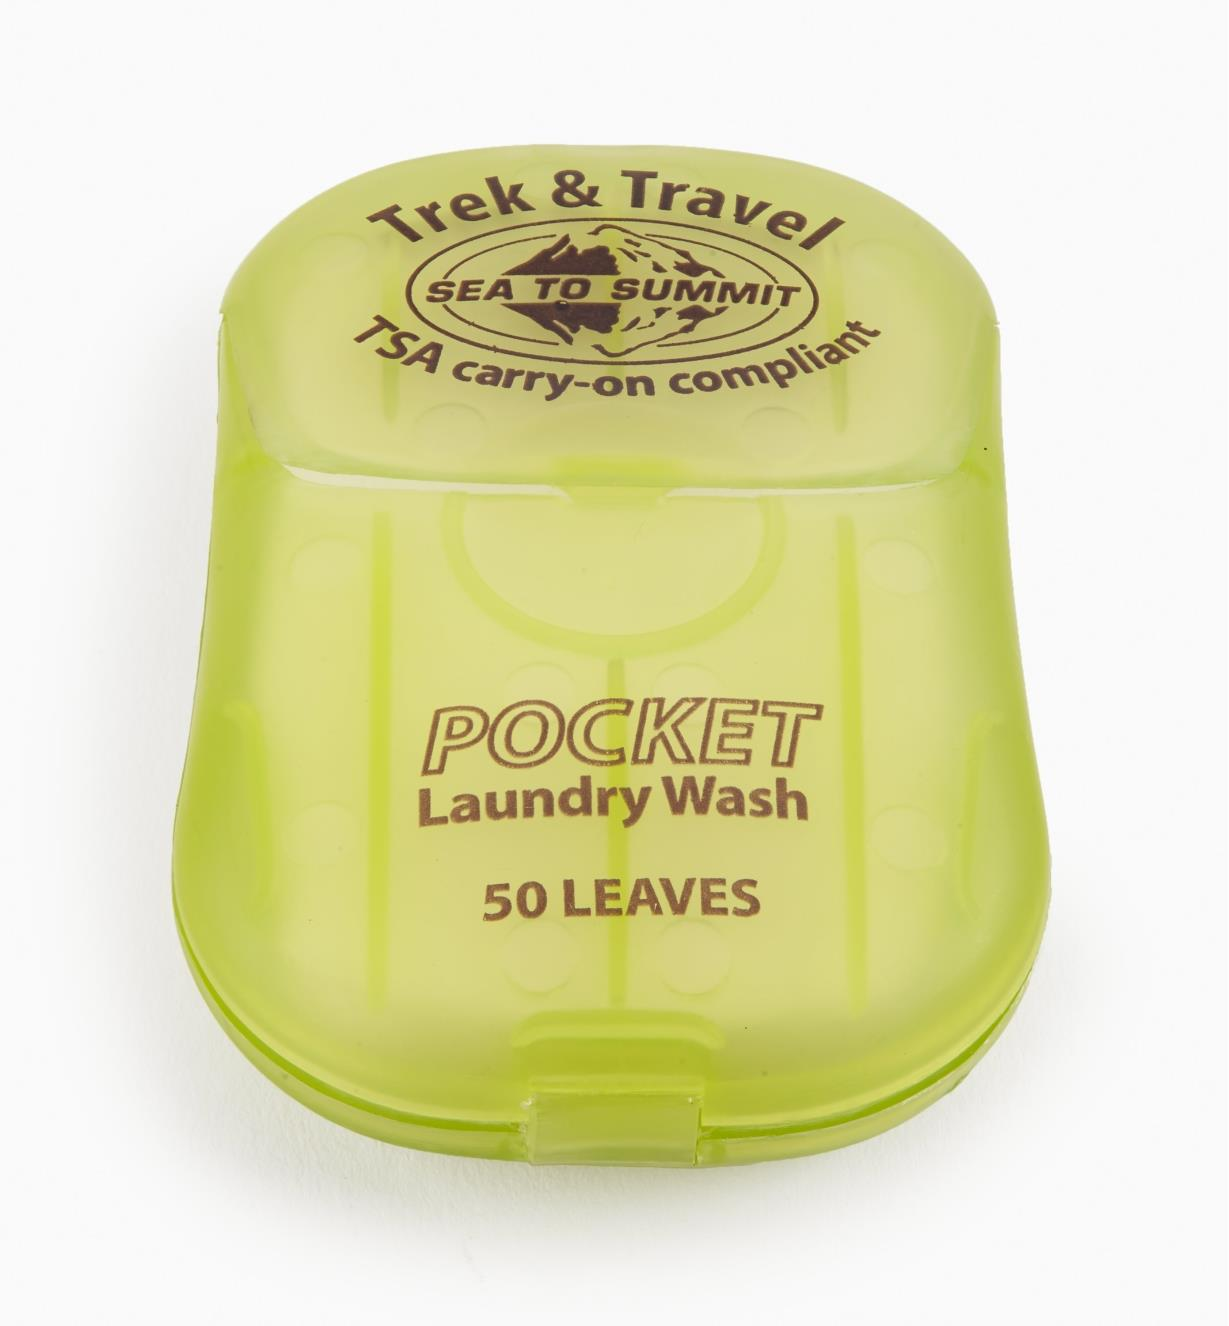 GB372 - Travel Laundry Soap, pkg. of 50